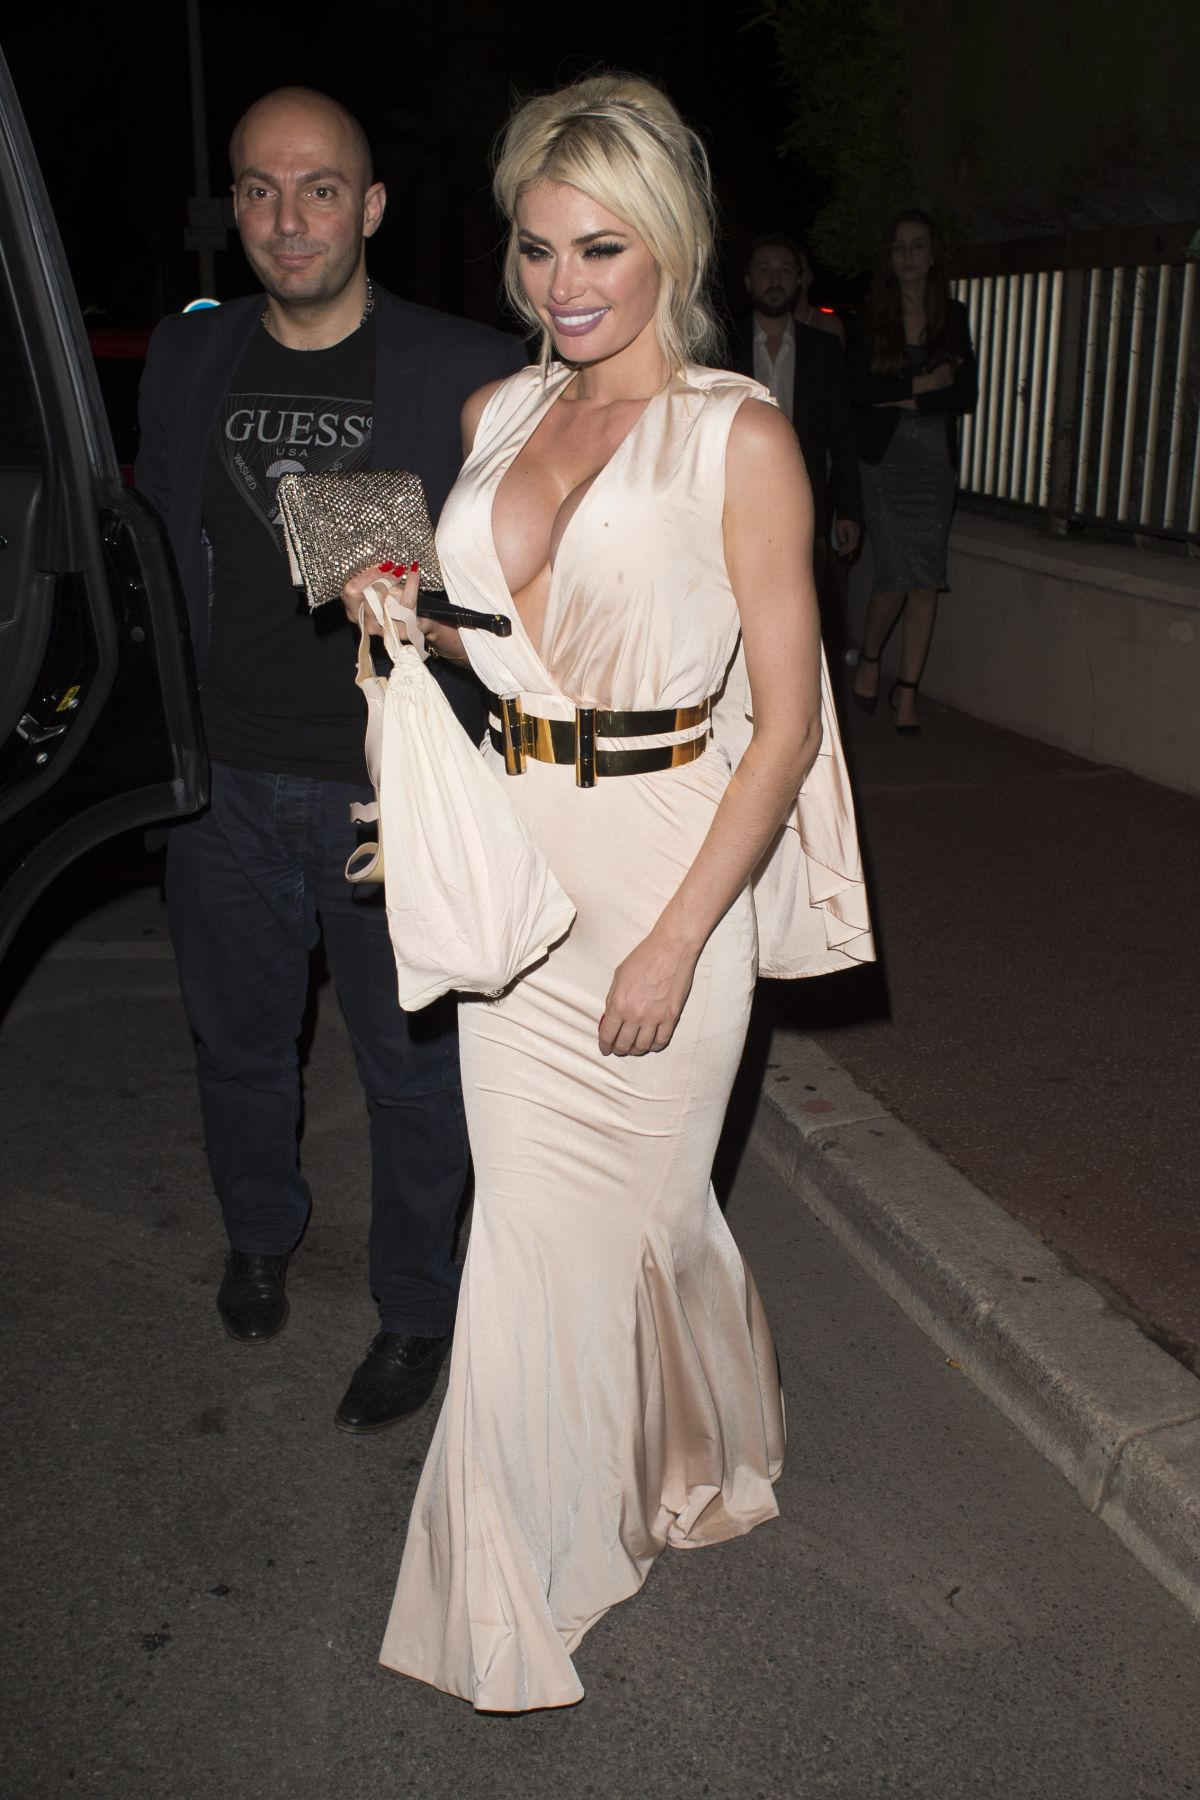 CHLOE SIMS at Gotha Nightclub in Cannes 05/15/2016